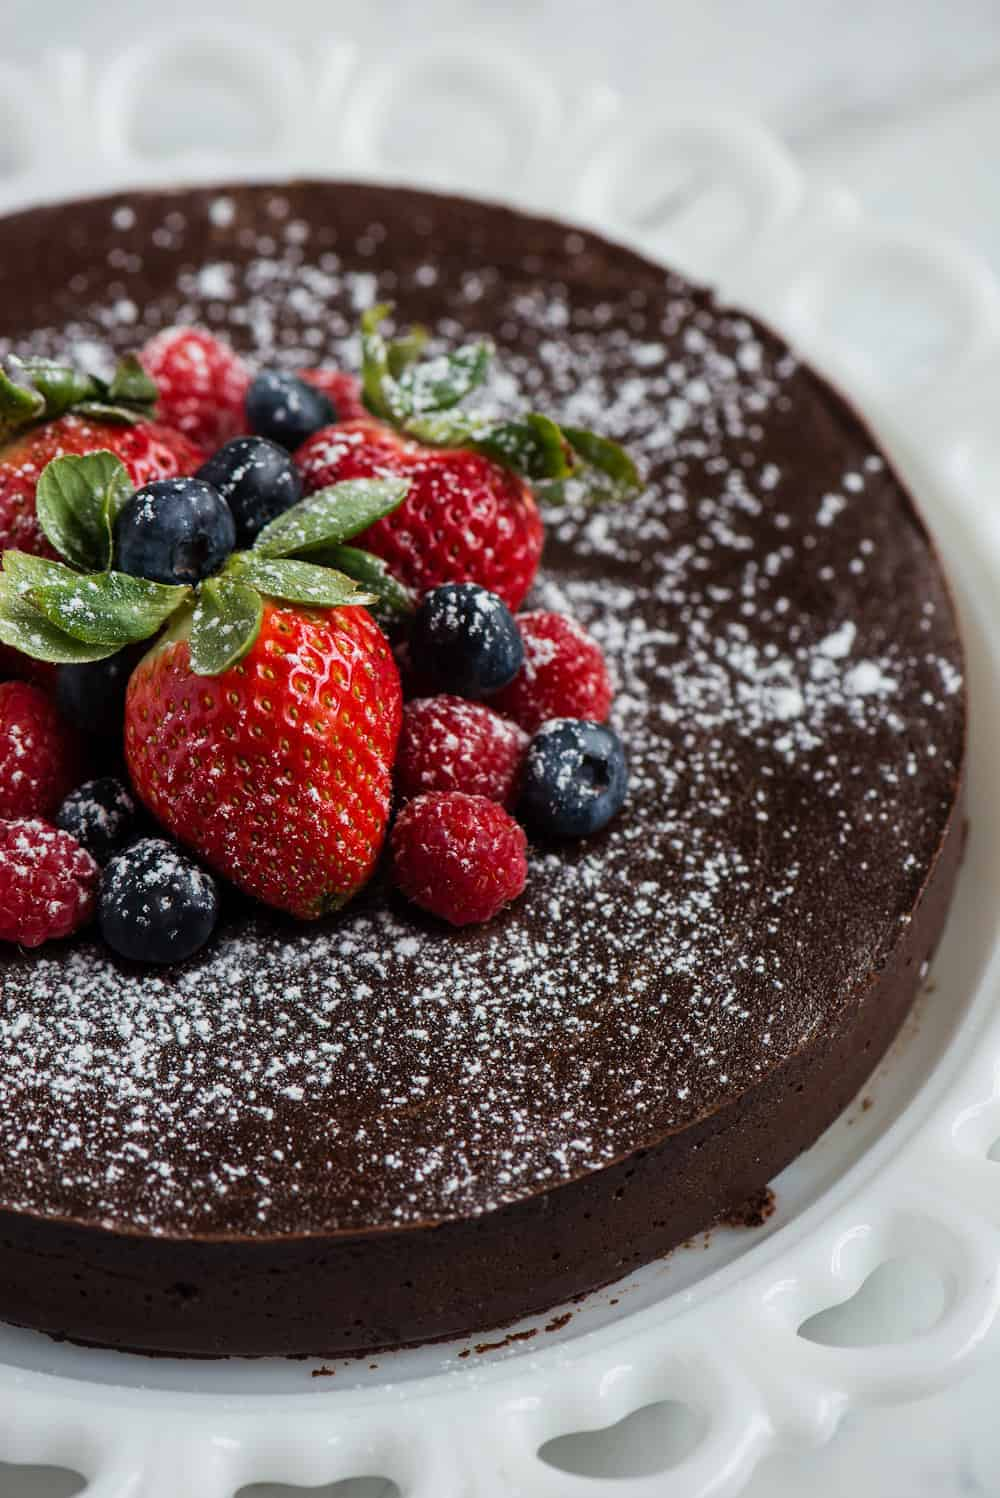 flourless chocolate cake with fresh berries